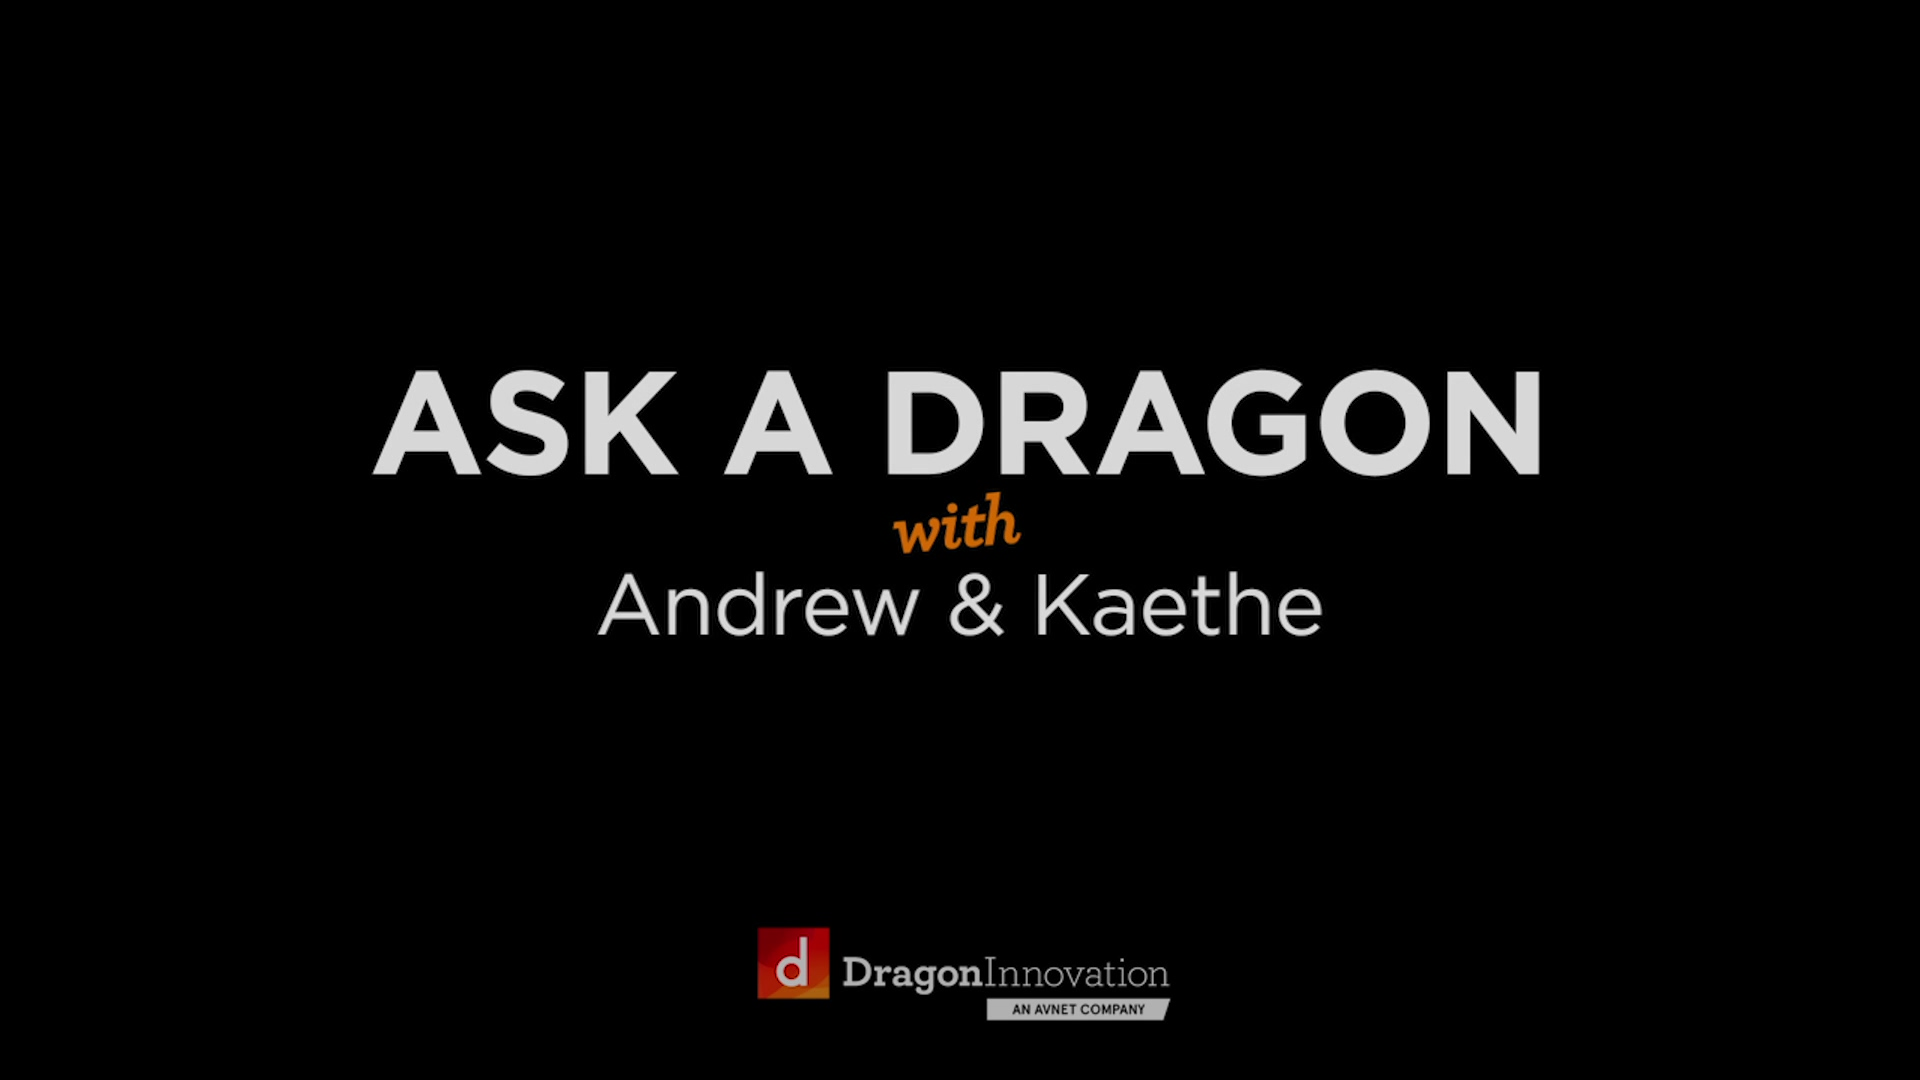 ask-a-dragon4